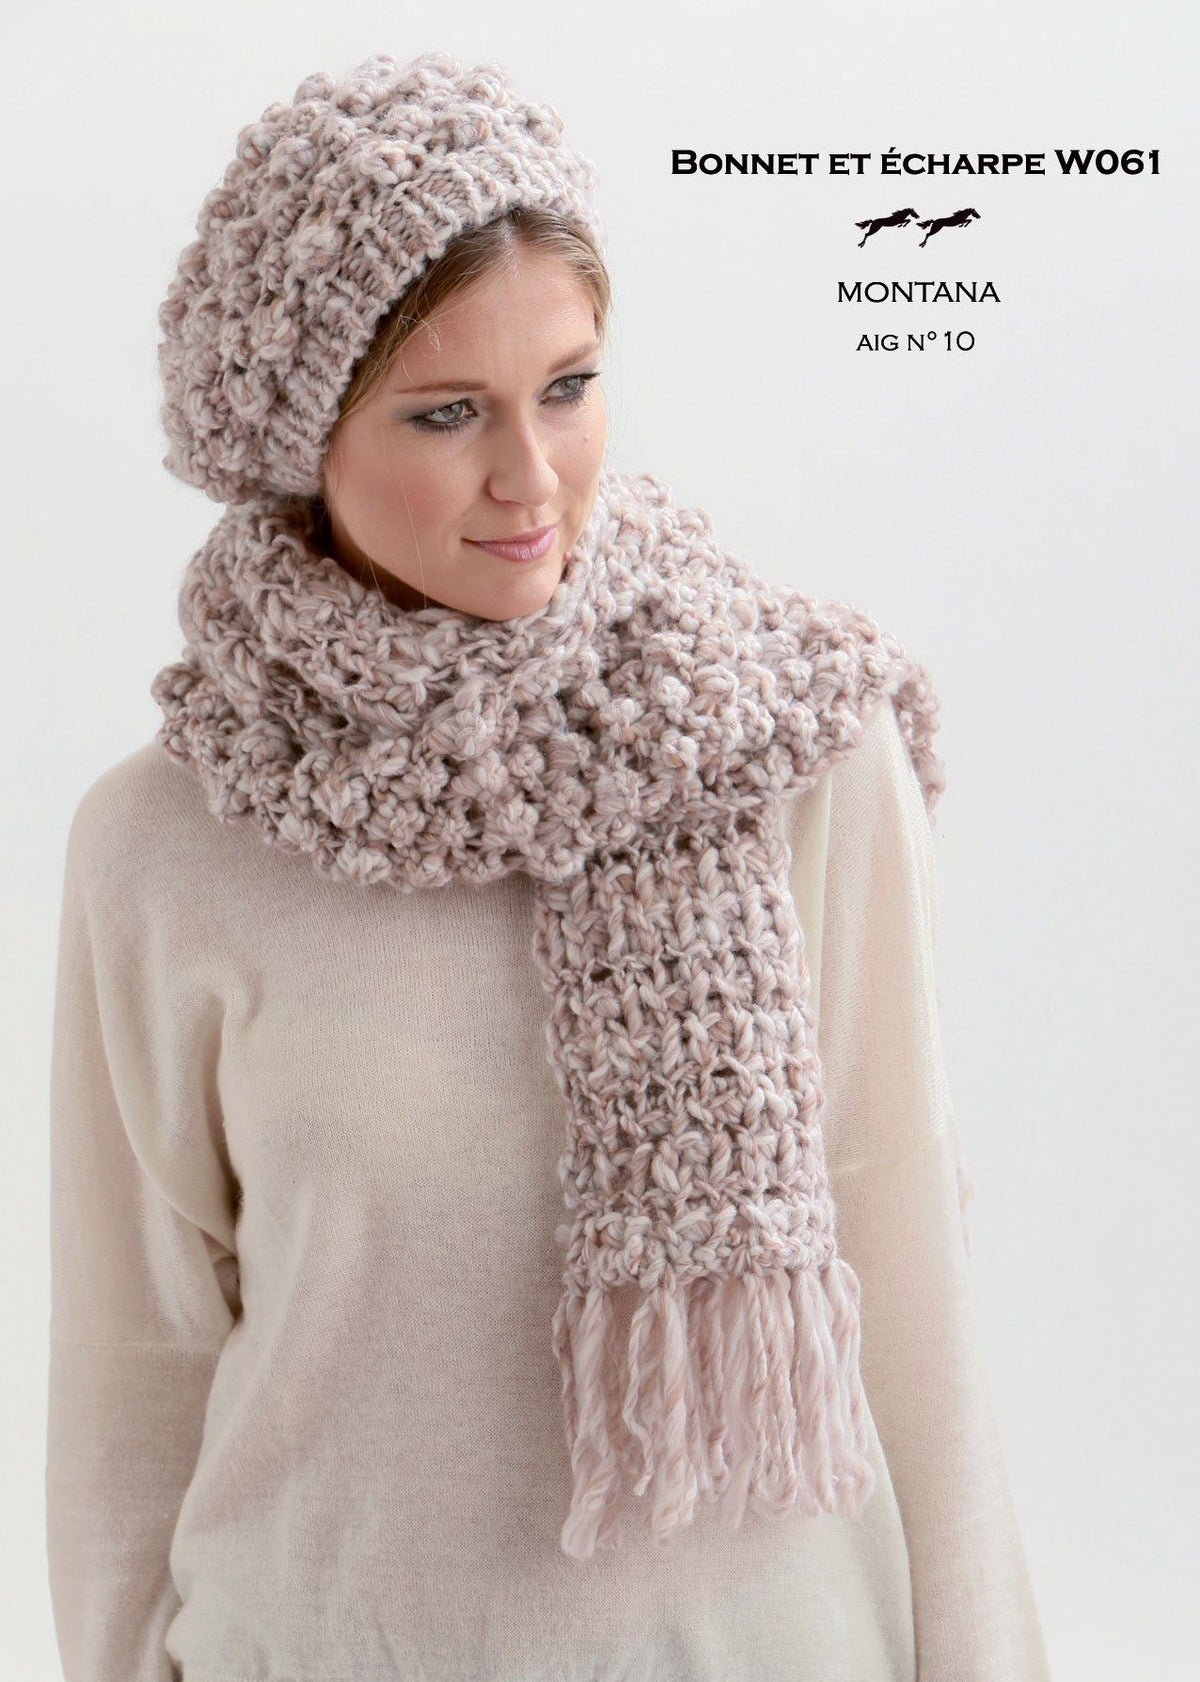 Free Cheval Blanc pattern - Scarf and Bonnet W061 Web Exclusive